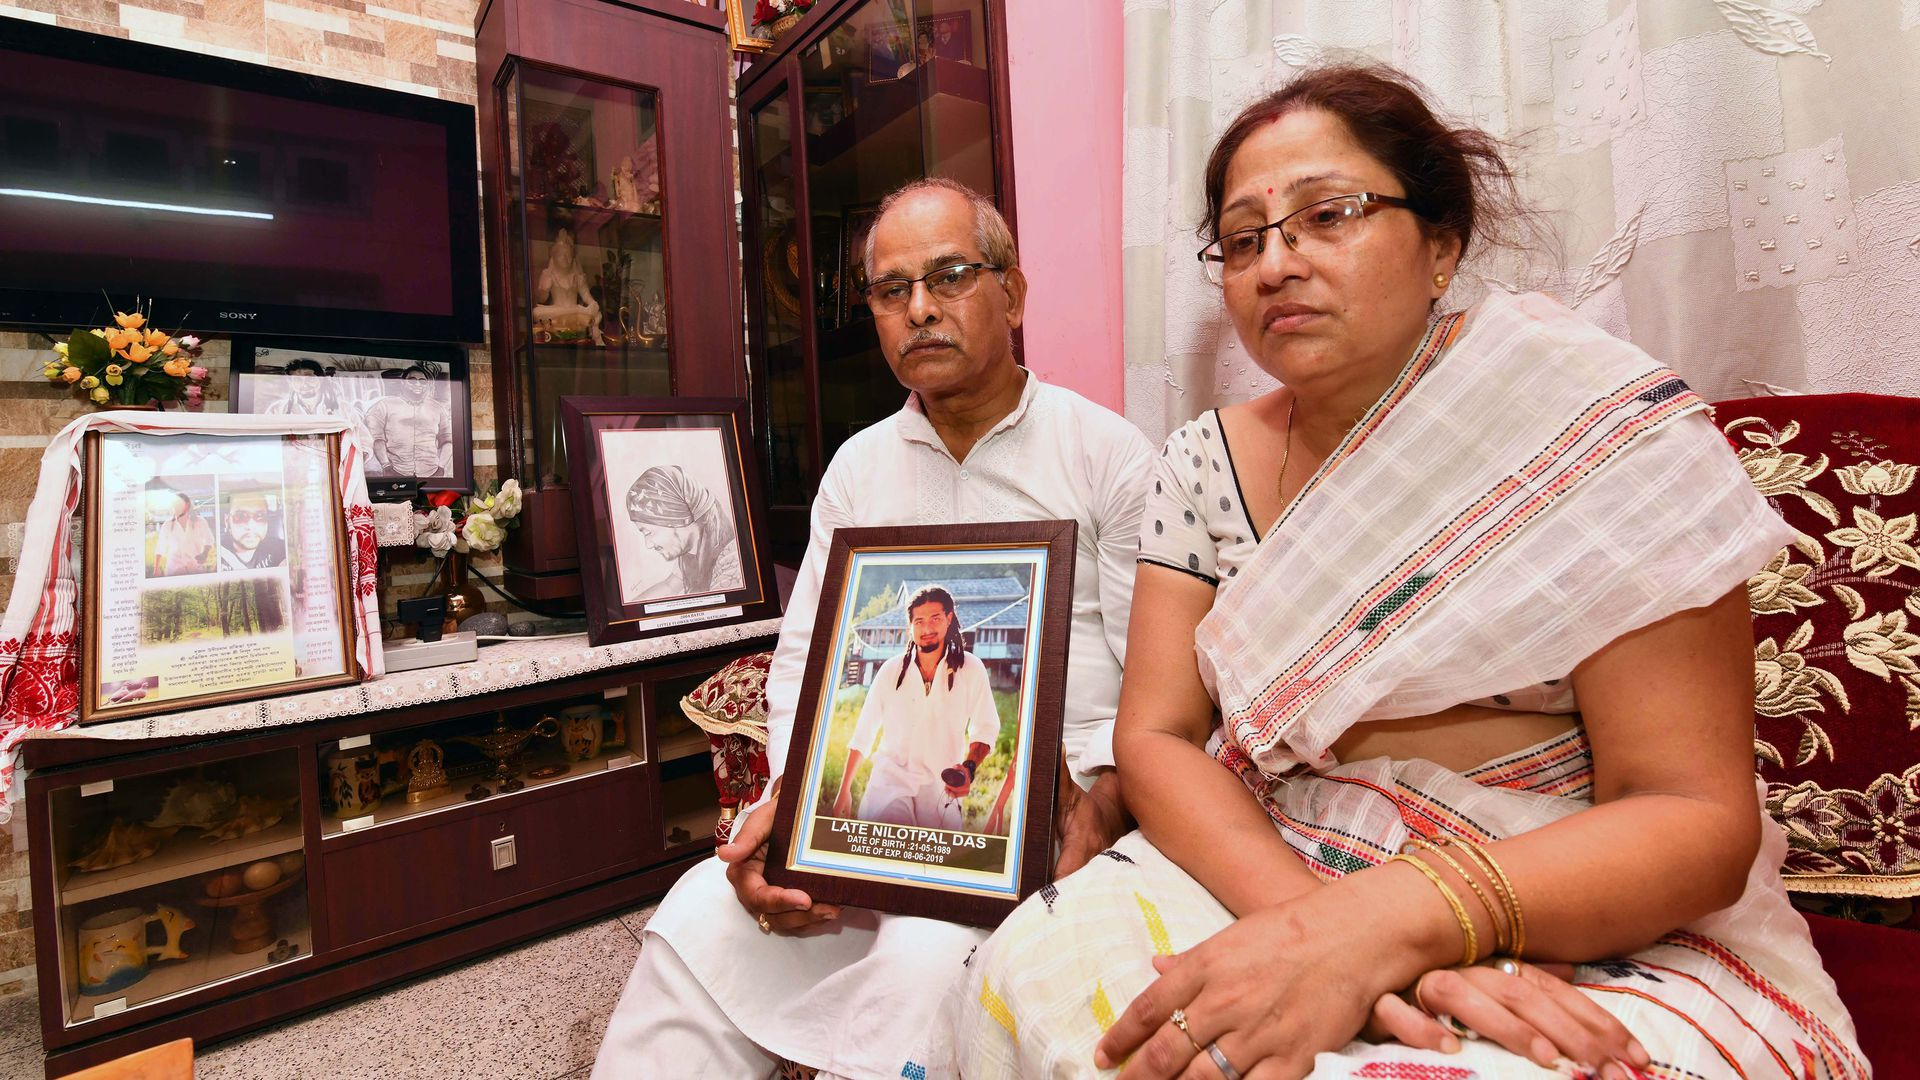 The parents of victim beaten to death by a mob sparked by rumours spread on Facebook and WhatsApp in India about child abductors. Photo credit should read Biju Boro/AFP/Getty Images